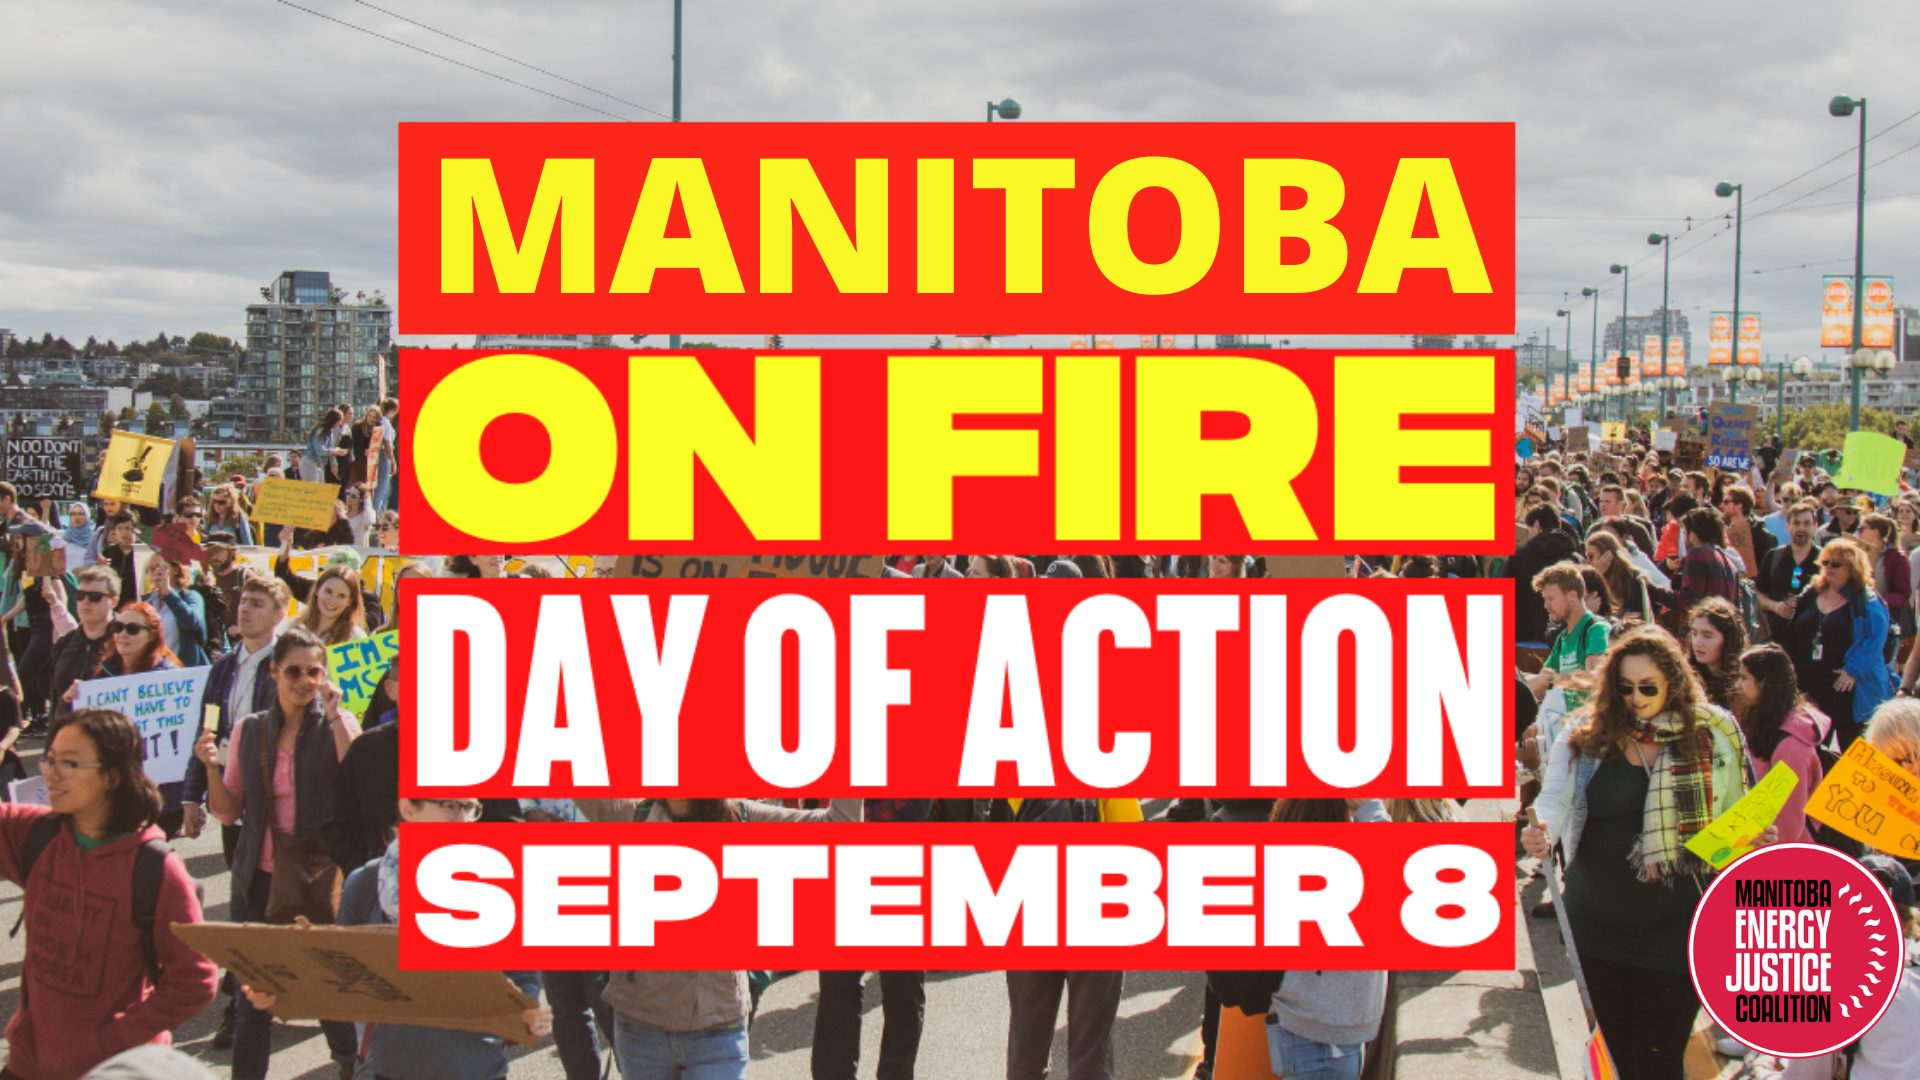 Picture of masses of people behind text Manitoba On Fire Day of Action September 8